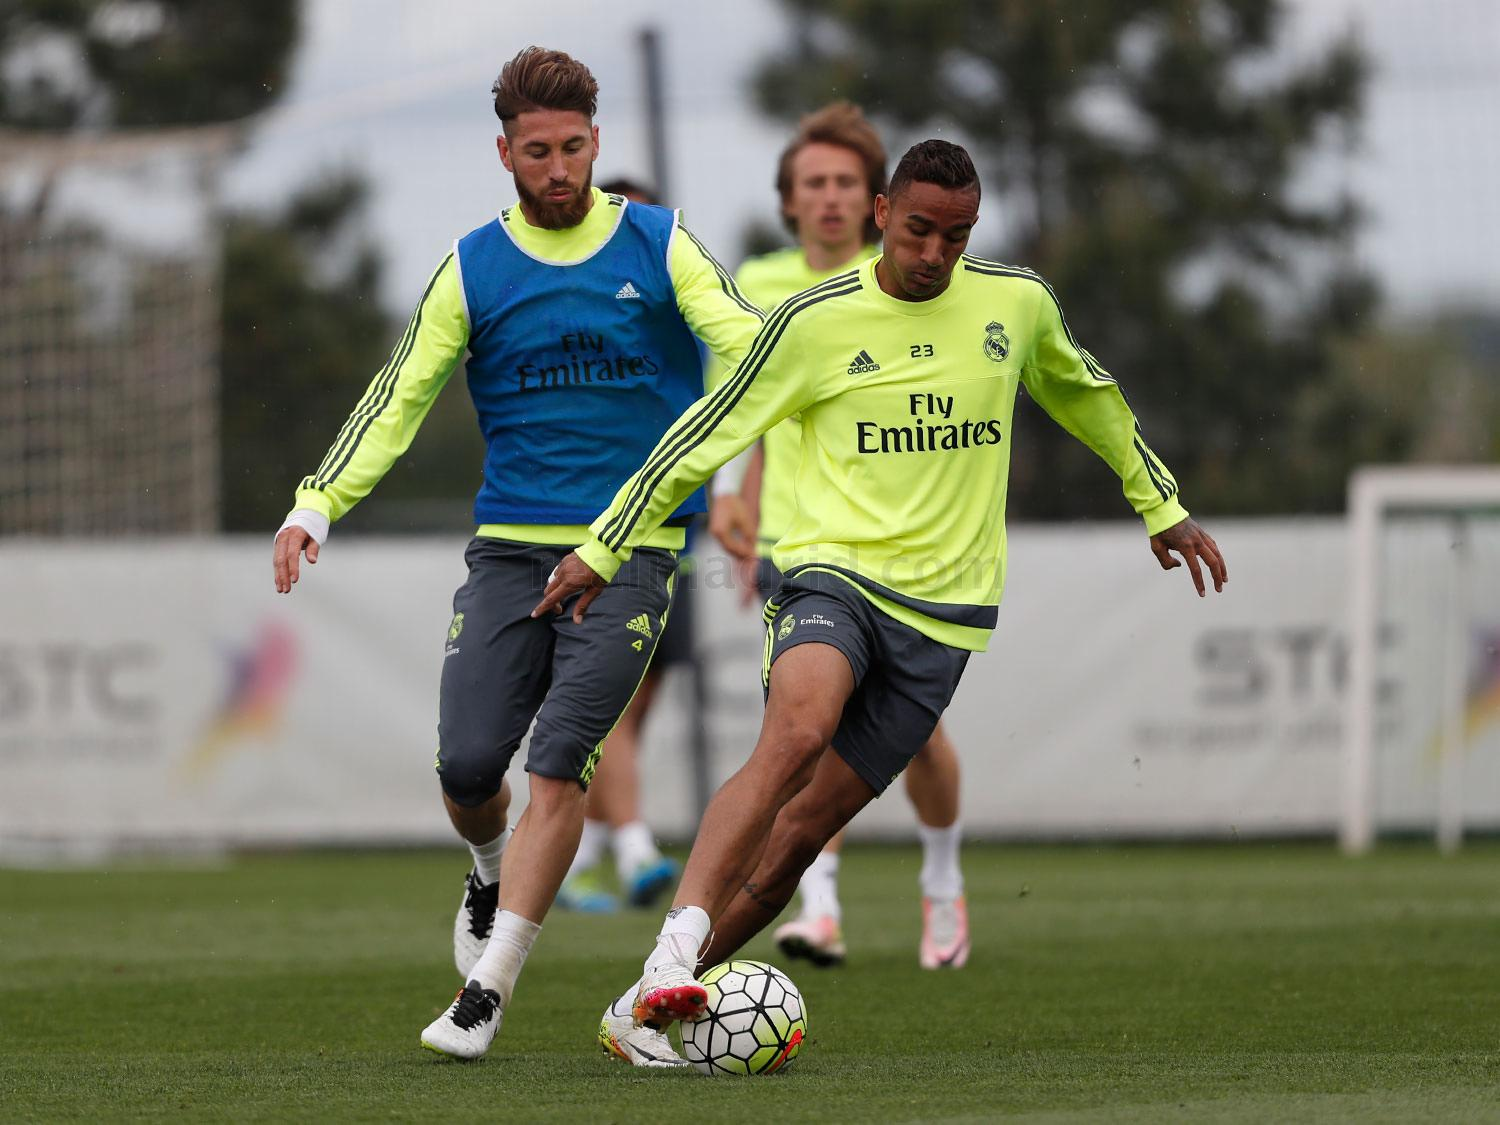 Real Madrid - Entrenamiento del Real Madrid - 13-05-2016